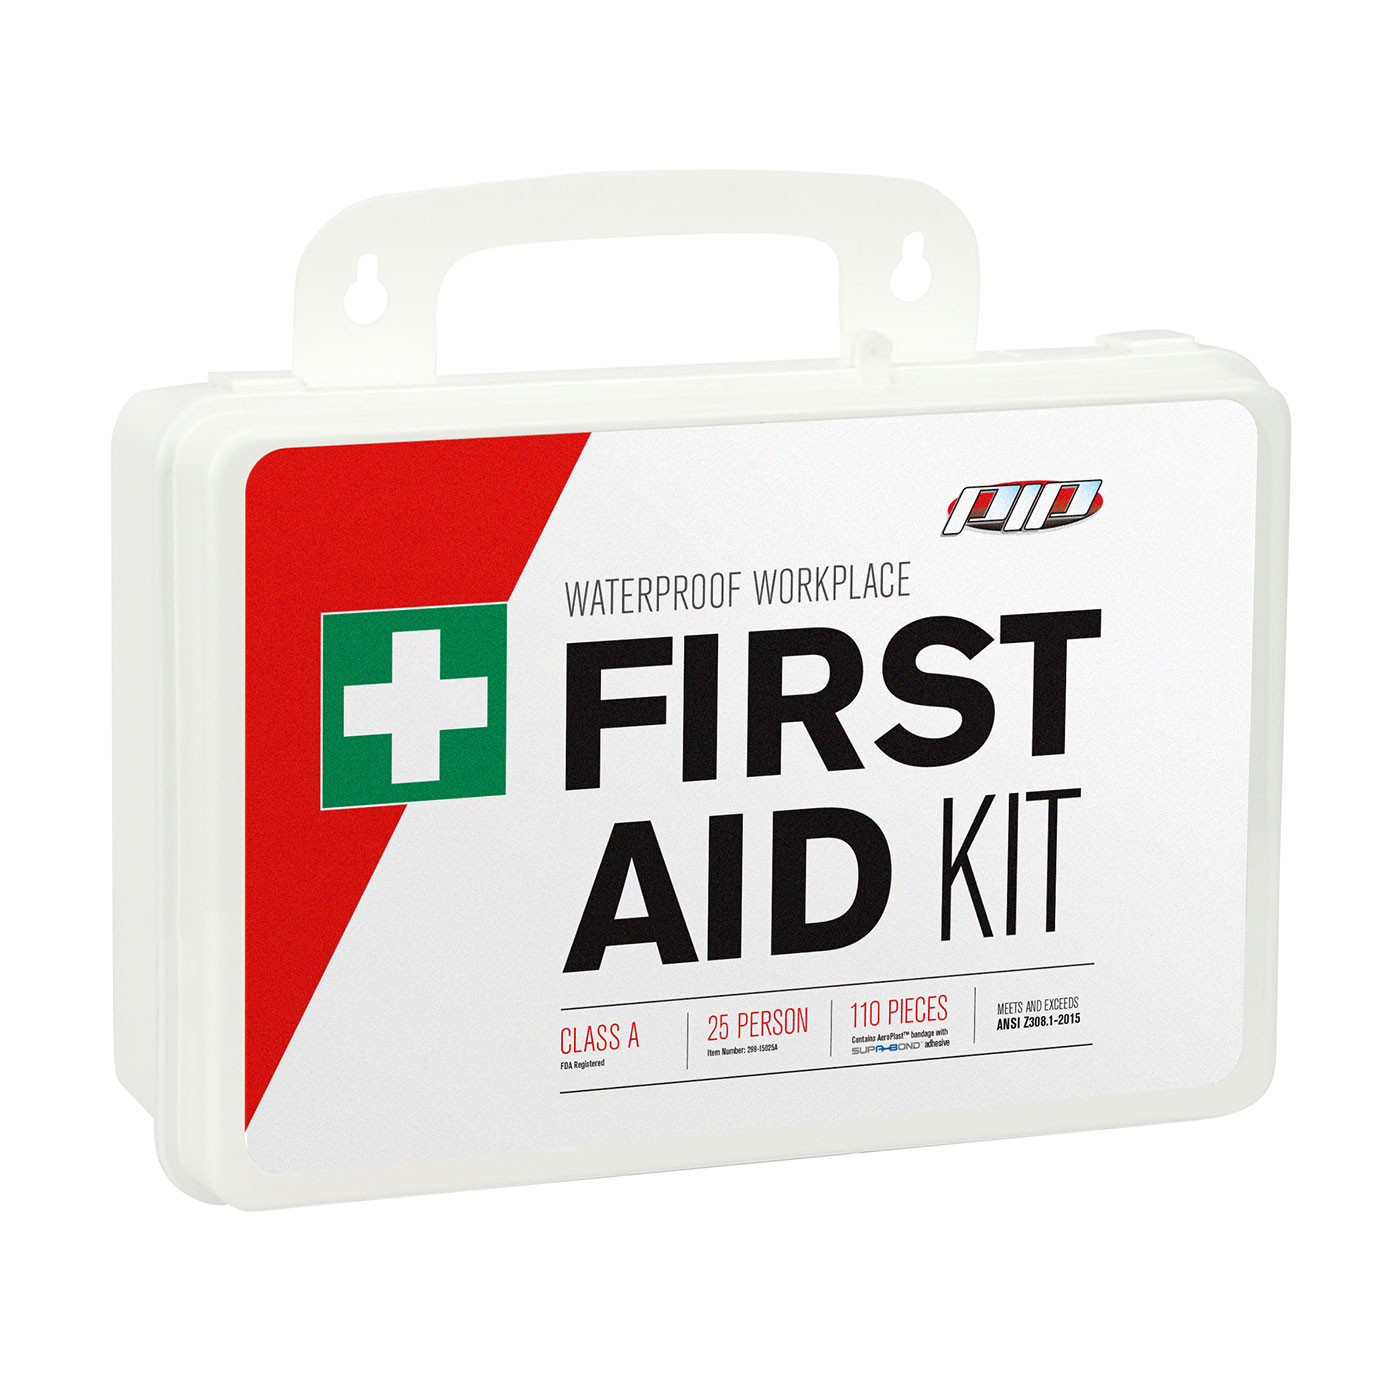 ANSI Class A Waterproof First Aid Kit - 25 Person, White, KIT